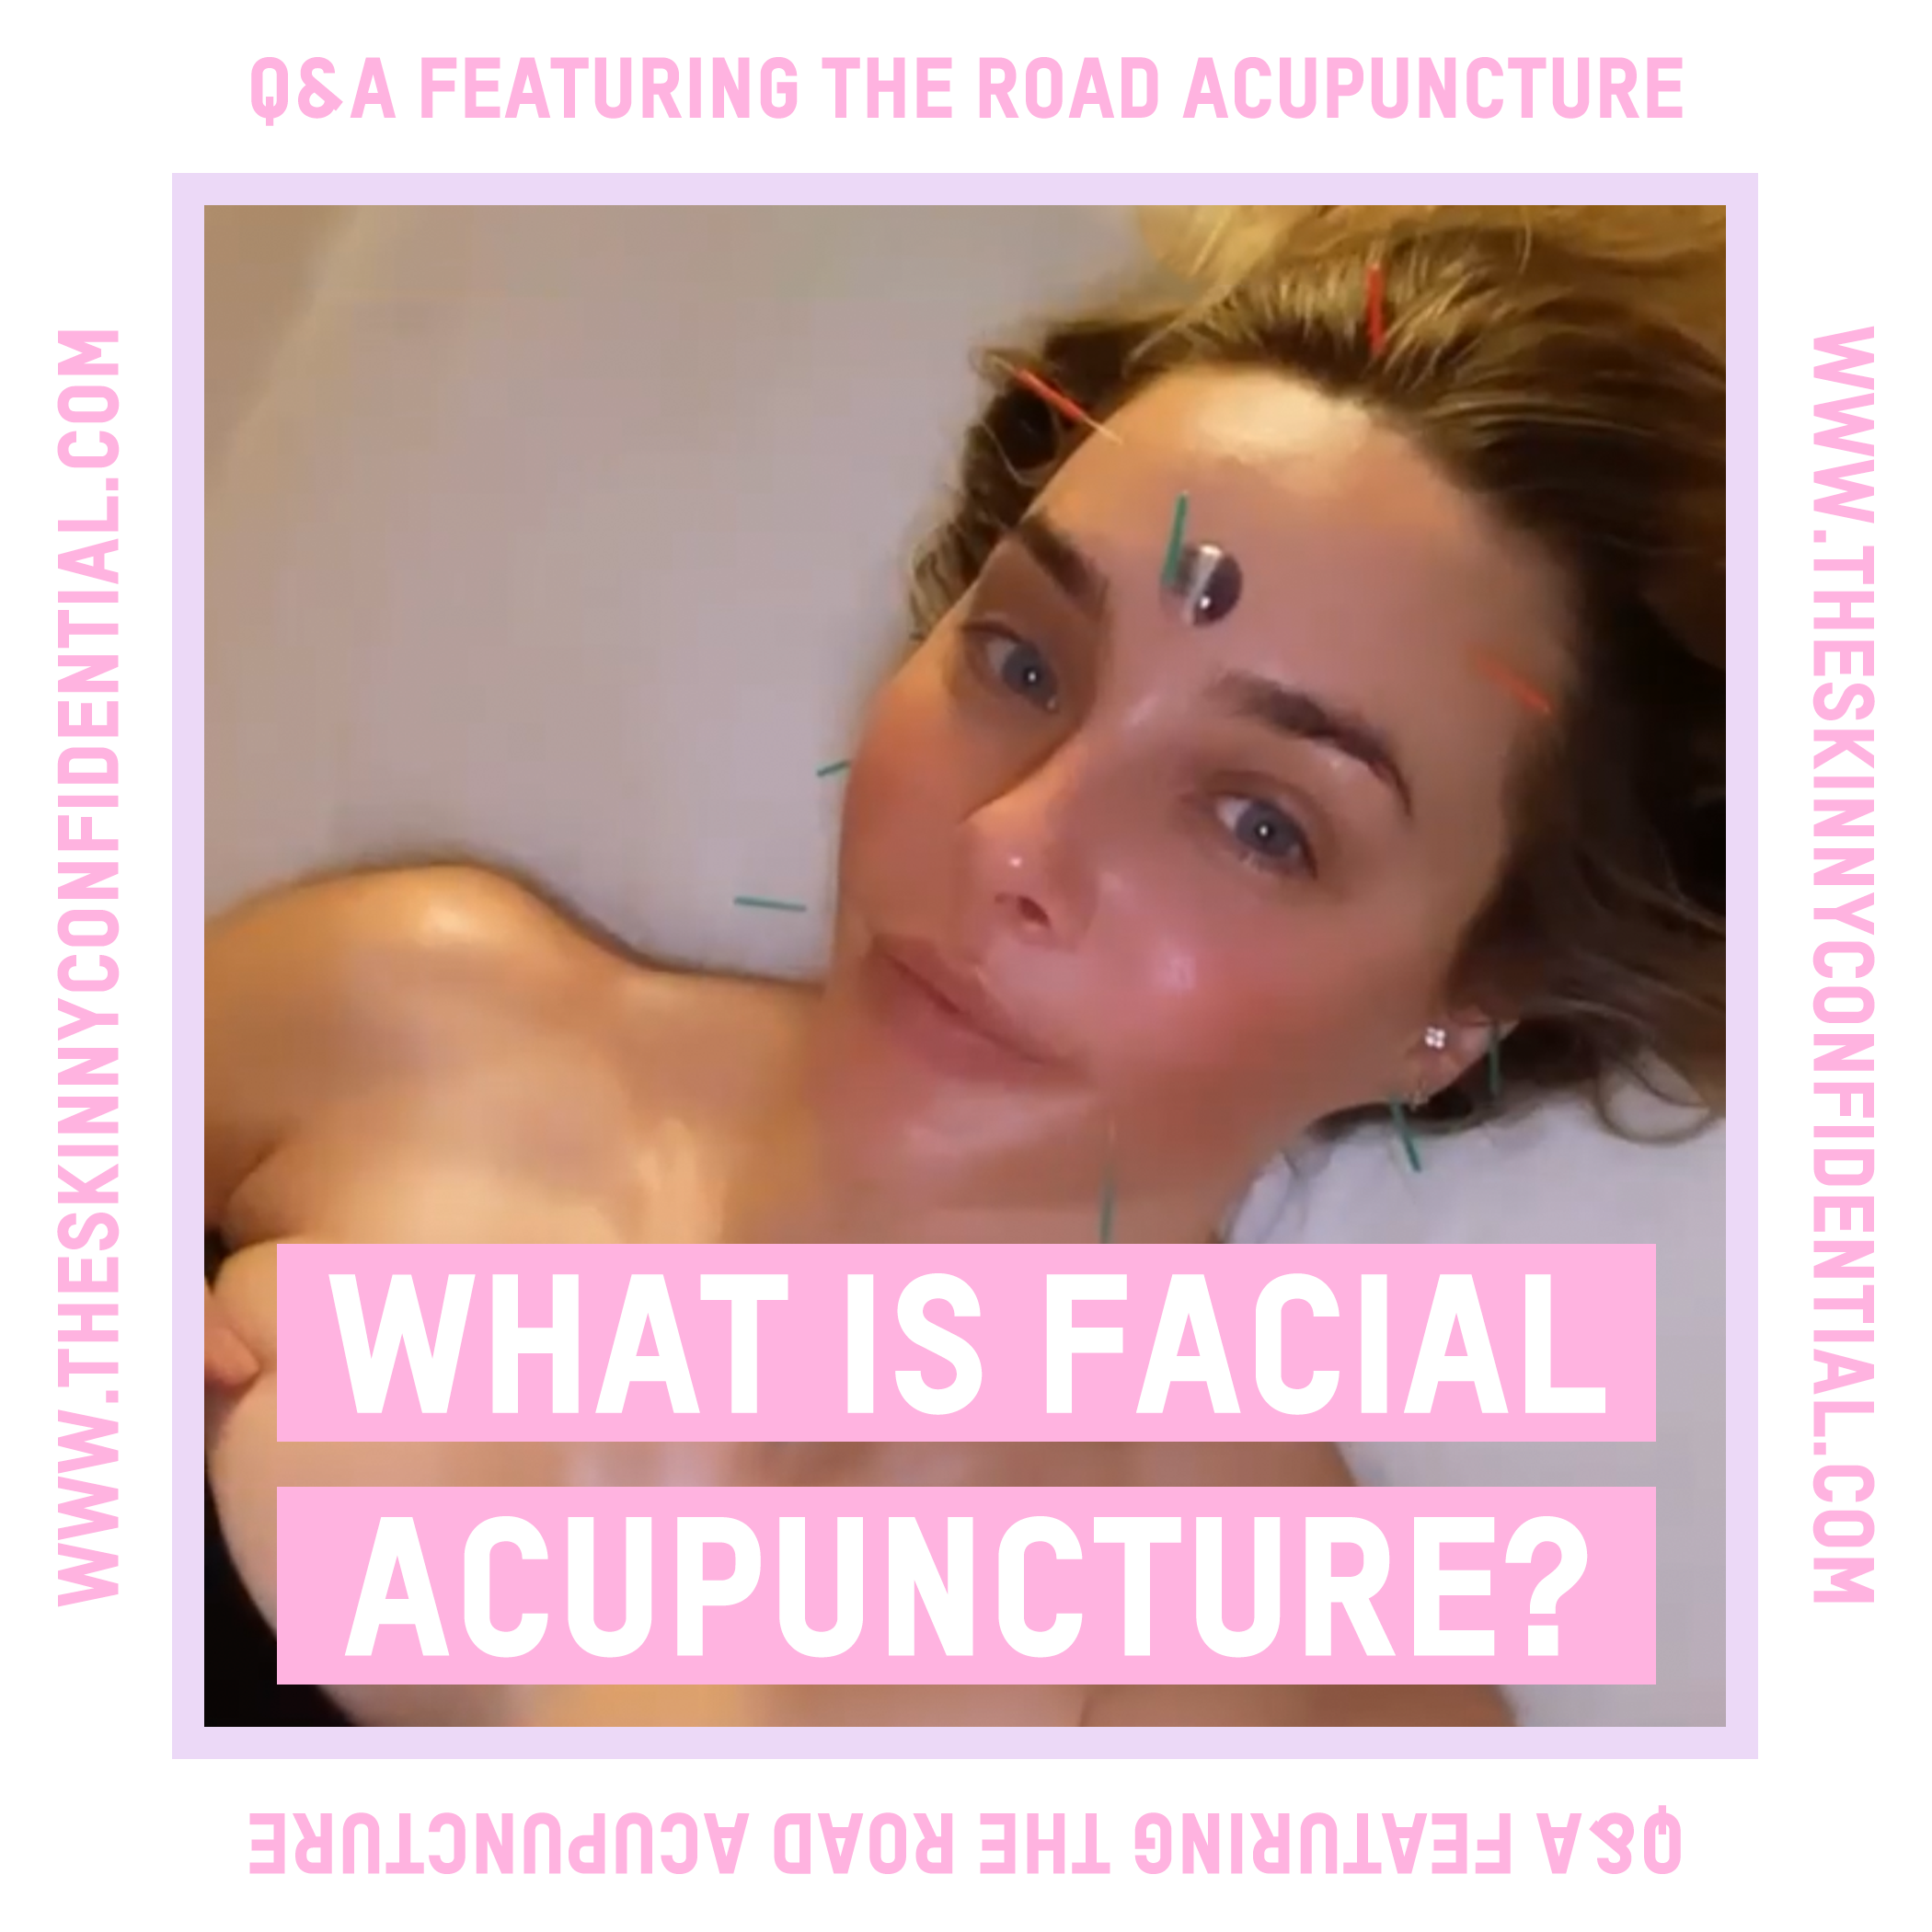 What Is Facial Acupuncture